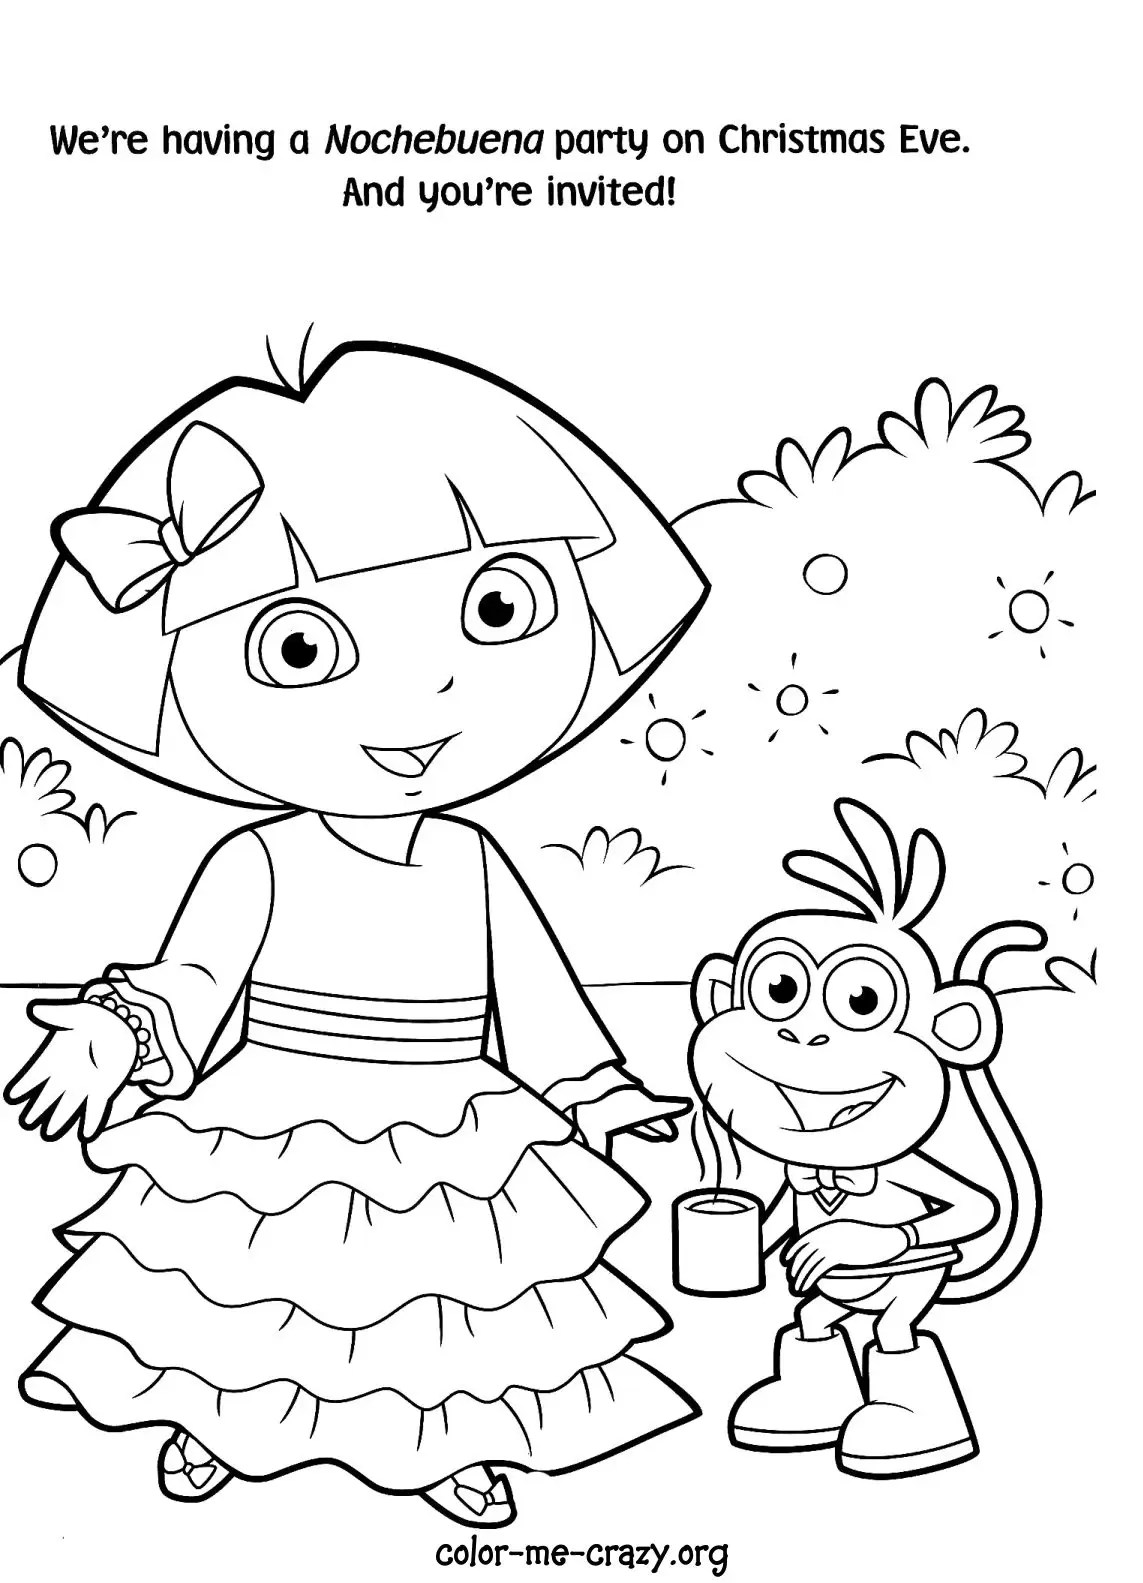 Princess Dora The Explorer Coloring Pages Printable Coloring Pages